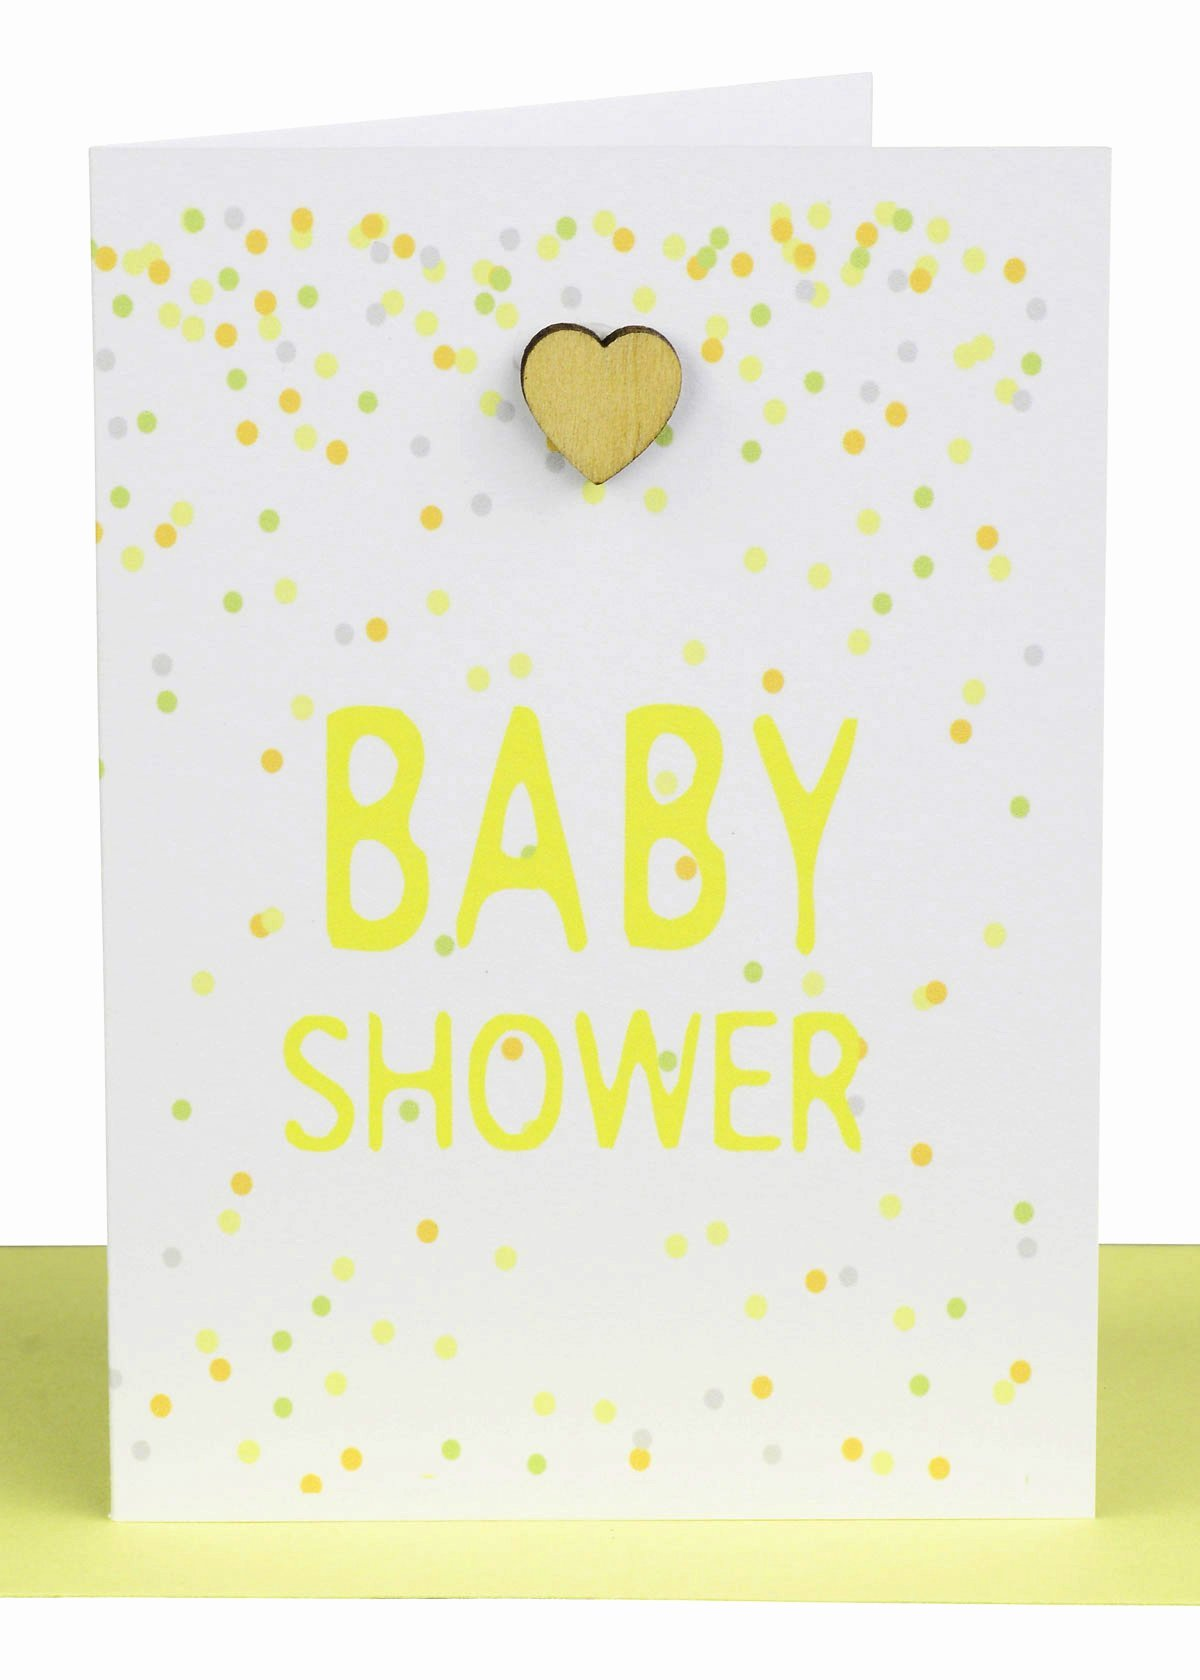 Gift Card Baby Shower Fresh Baby Shower Gift Card Heart & Confetti